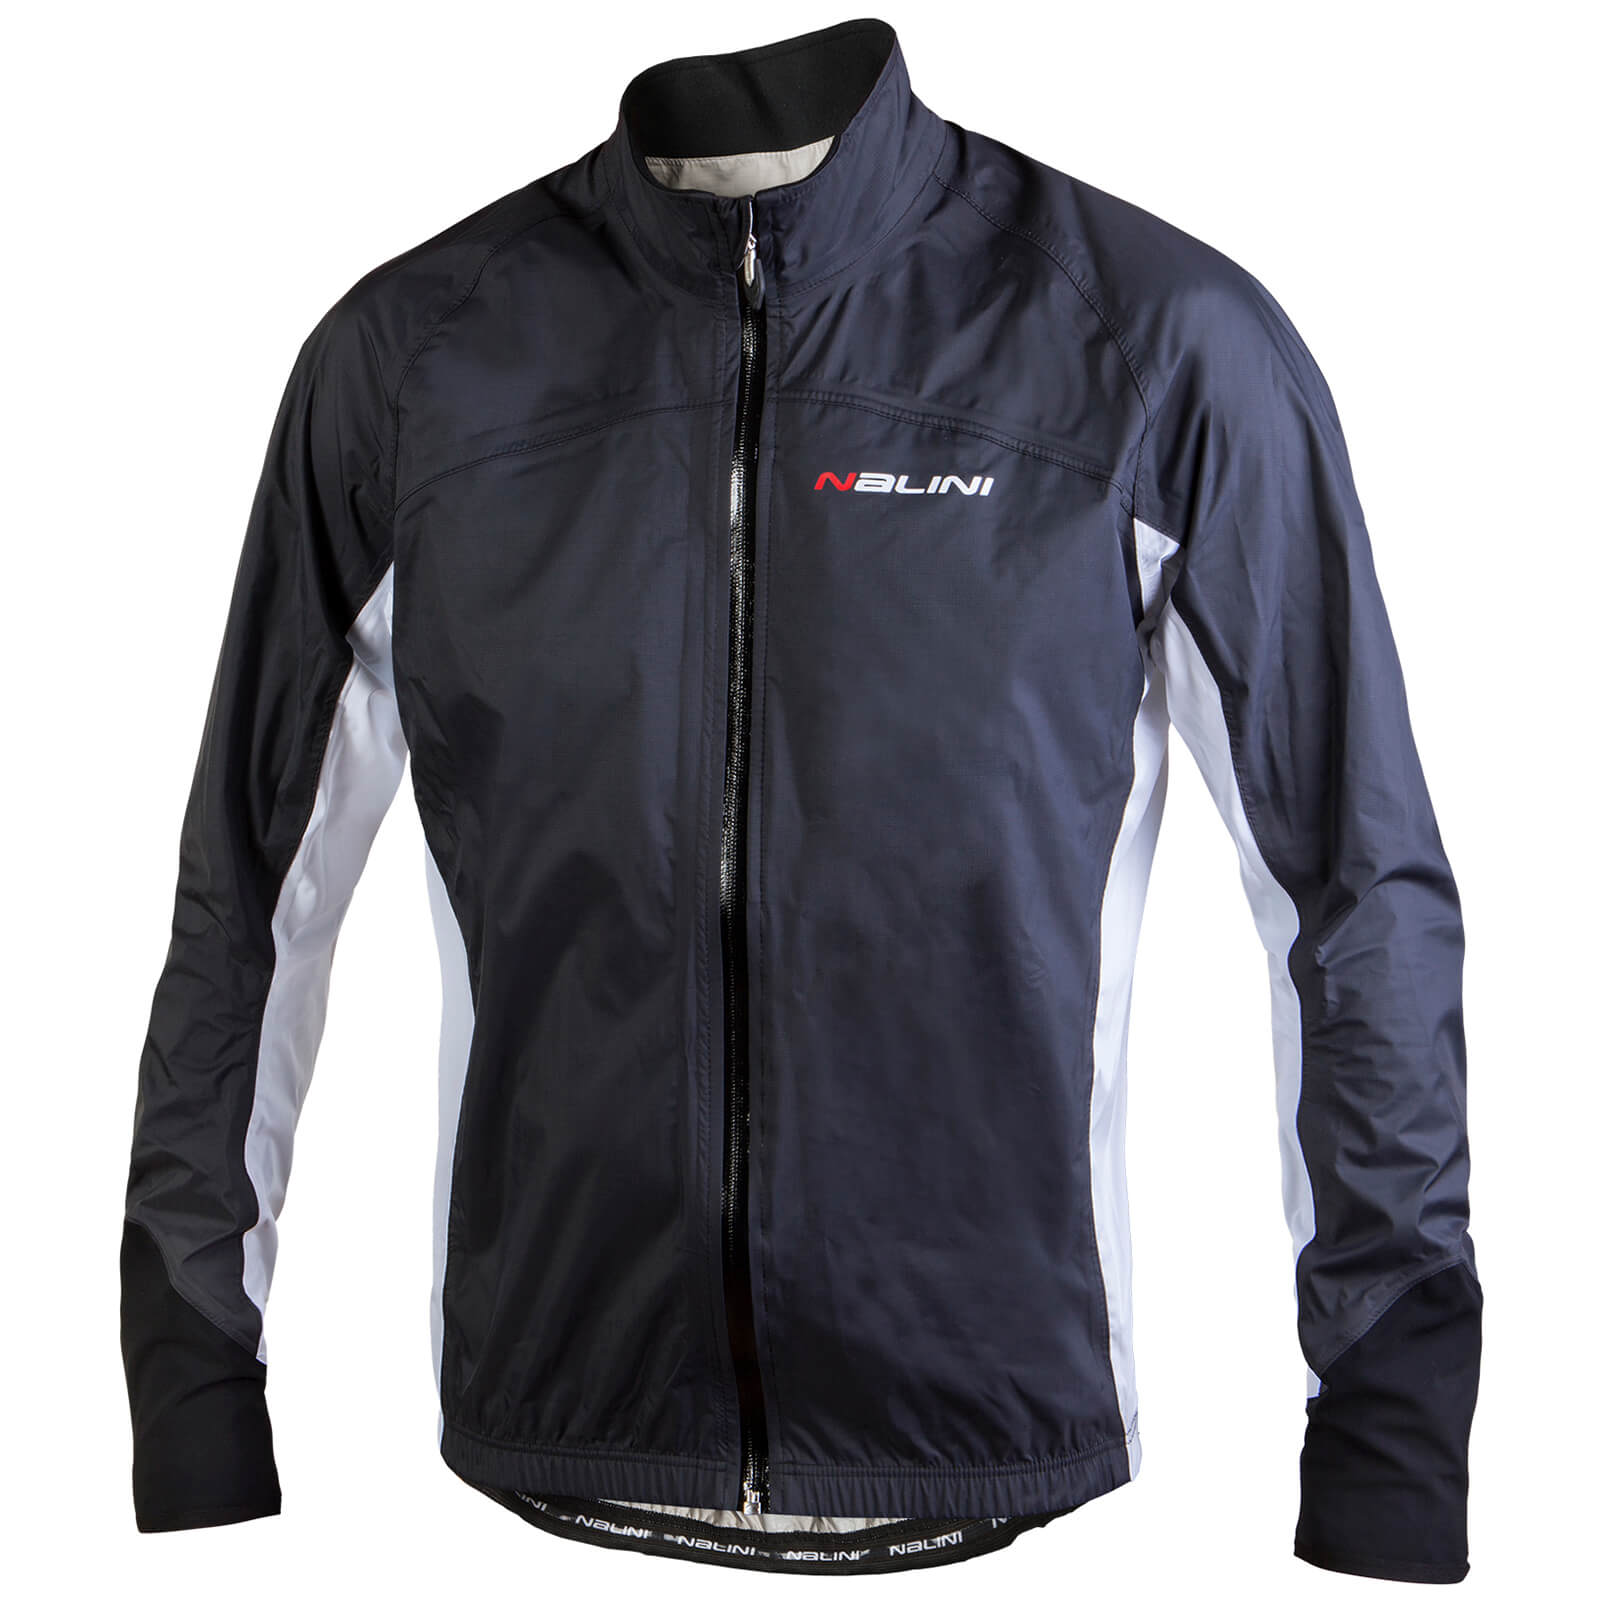 Nalini Evo Jacket - Black